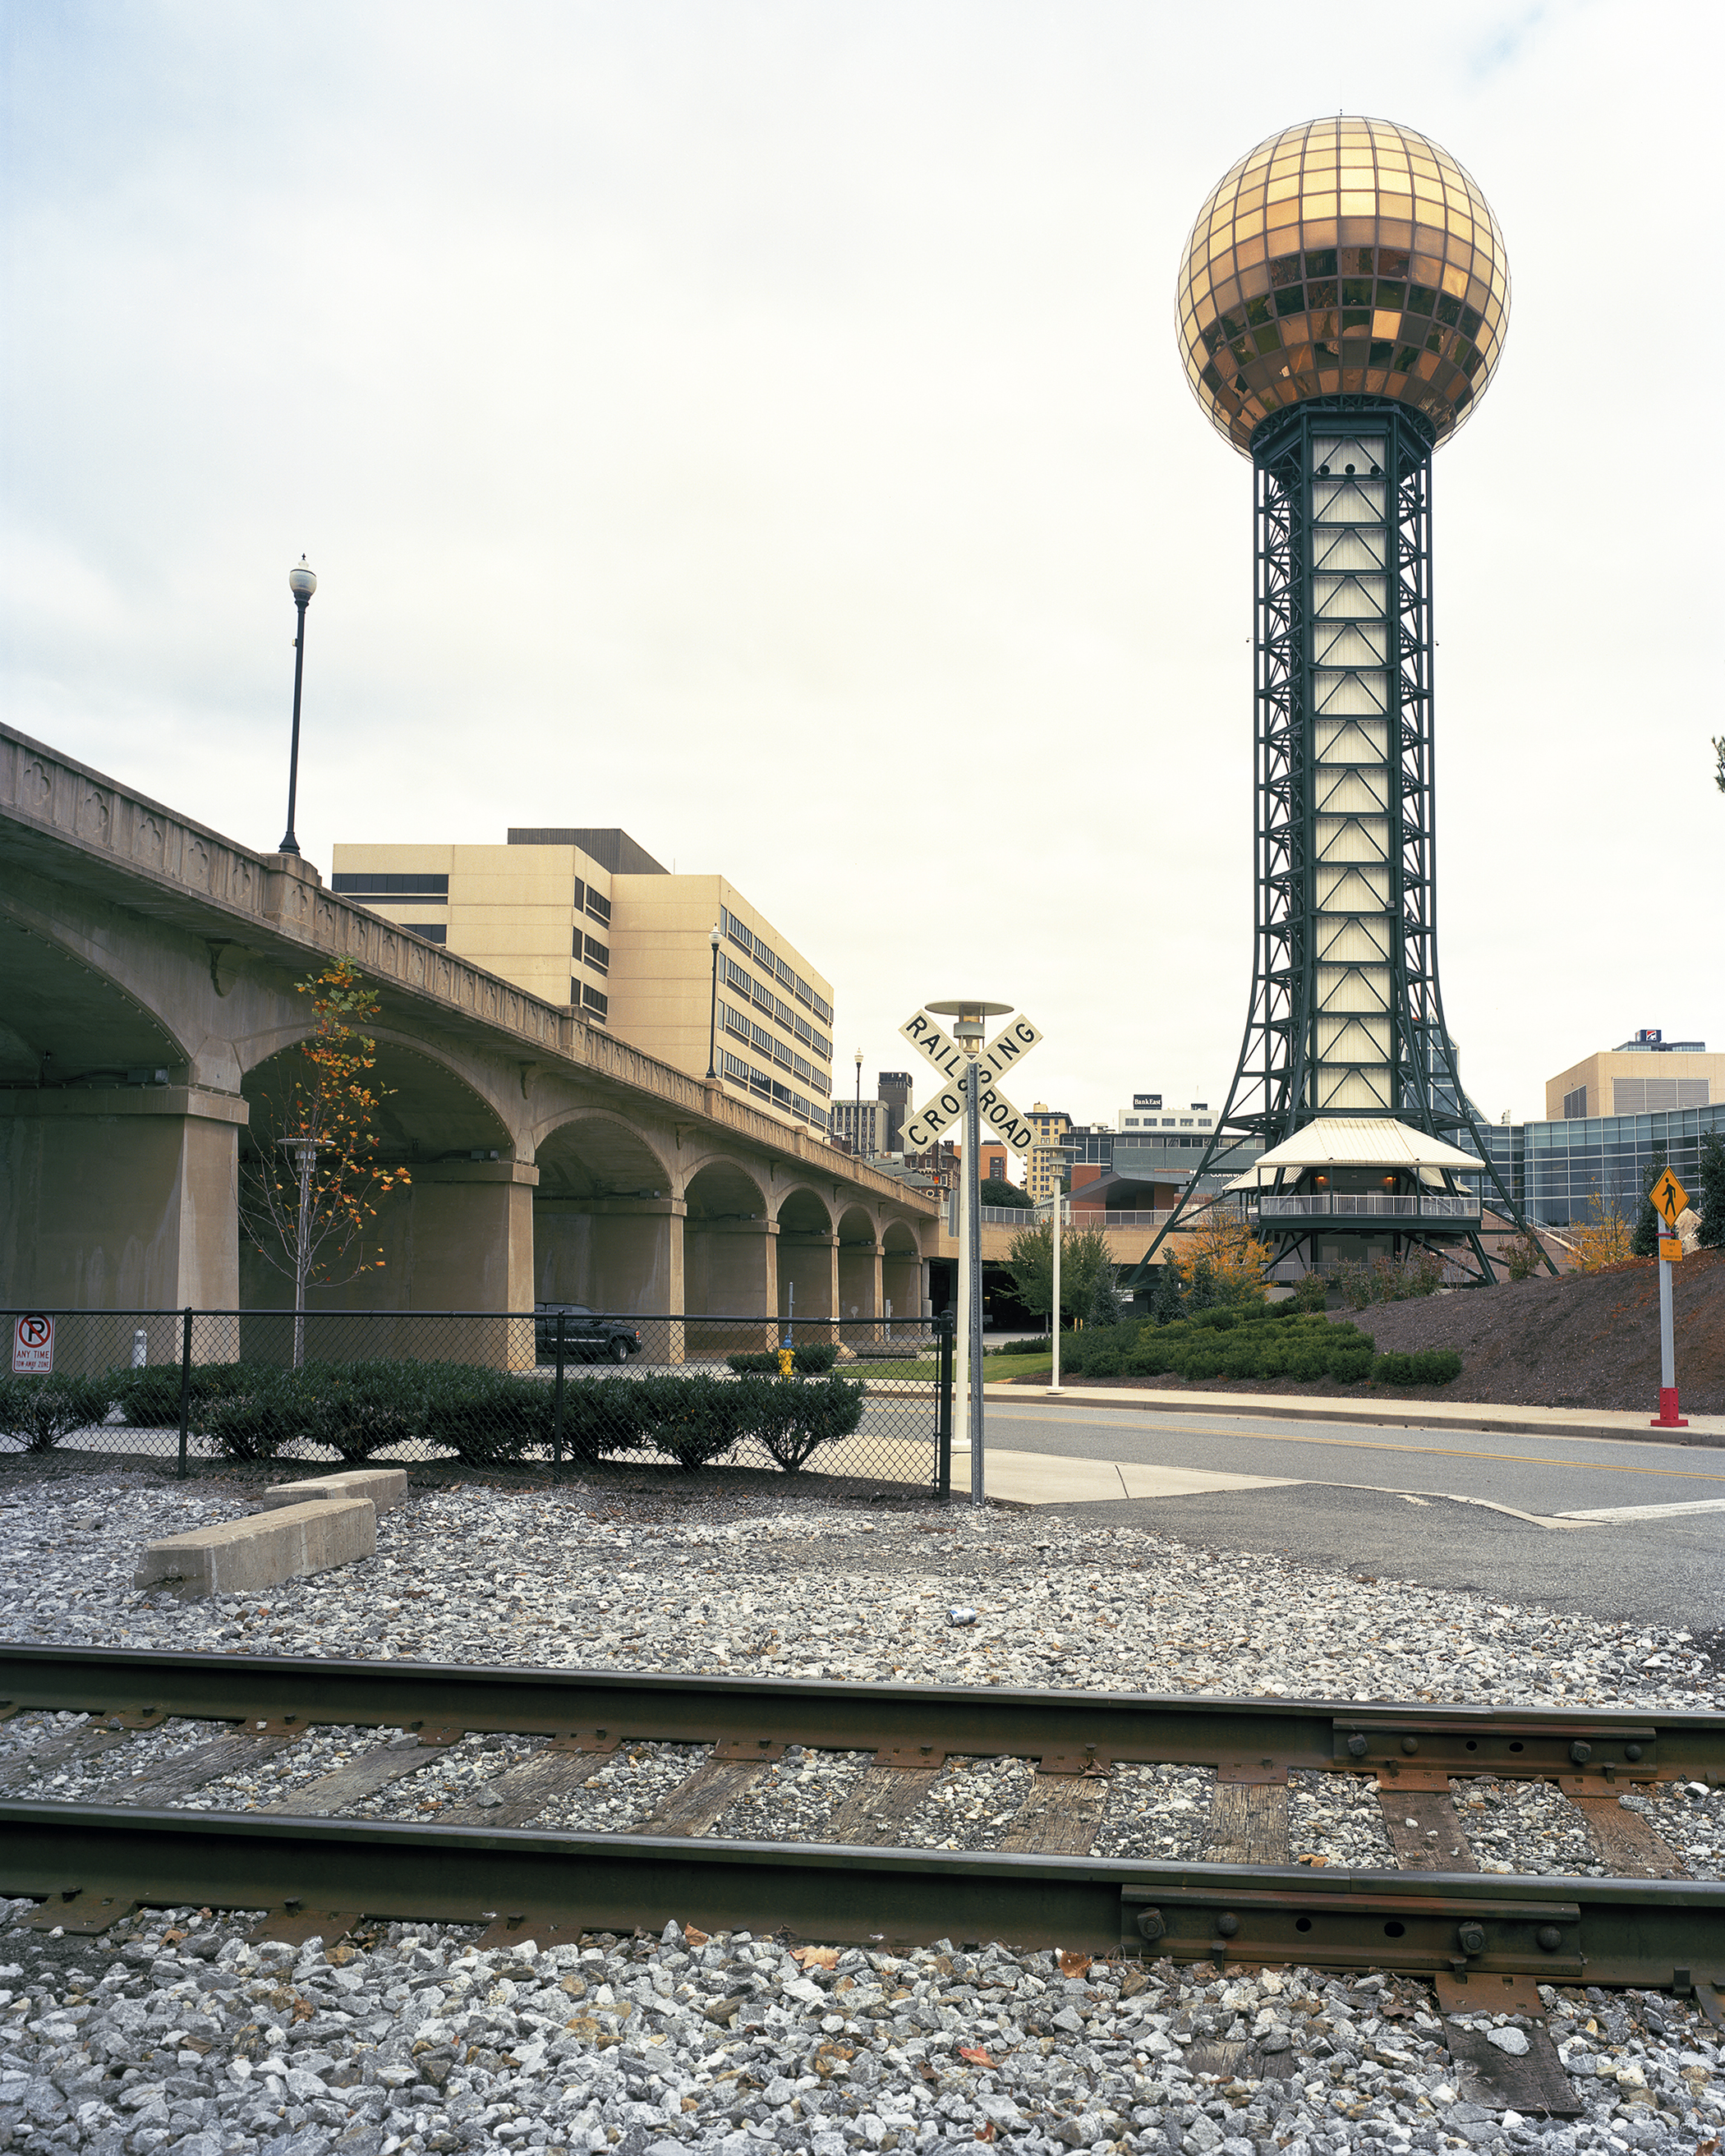 Jade_Doskow_Knoxville_Sunsphere_20x16_Flat.jpg